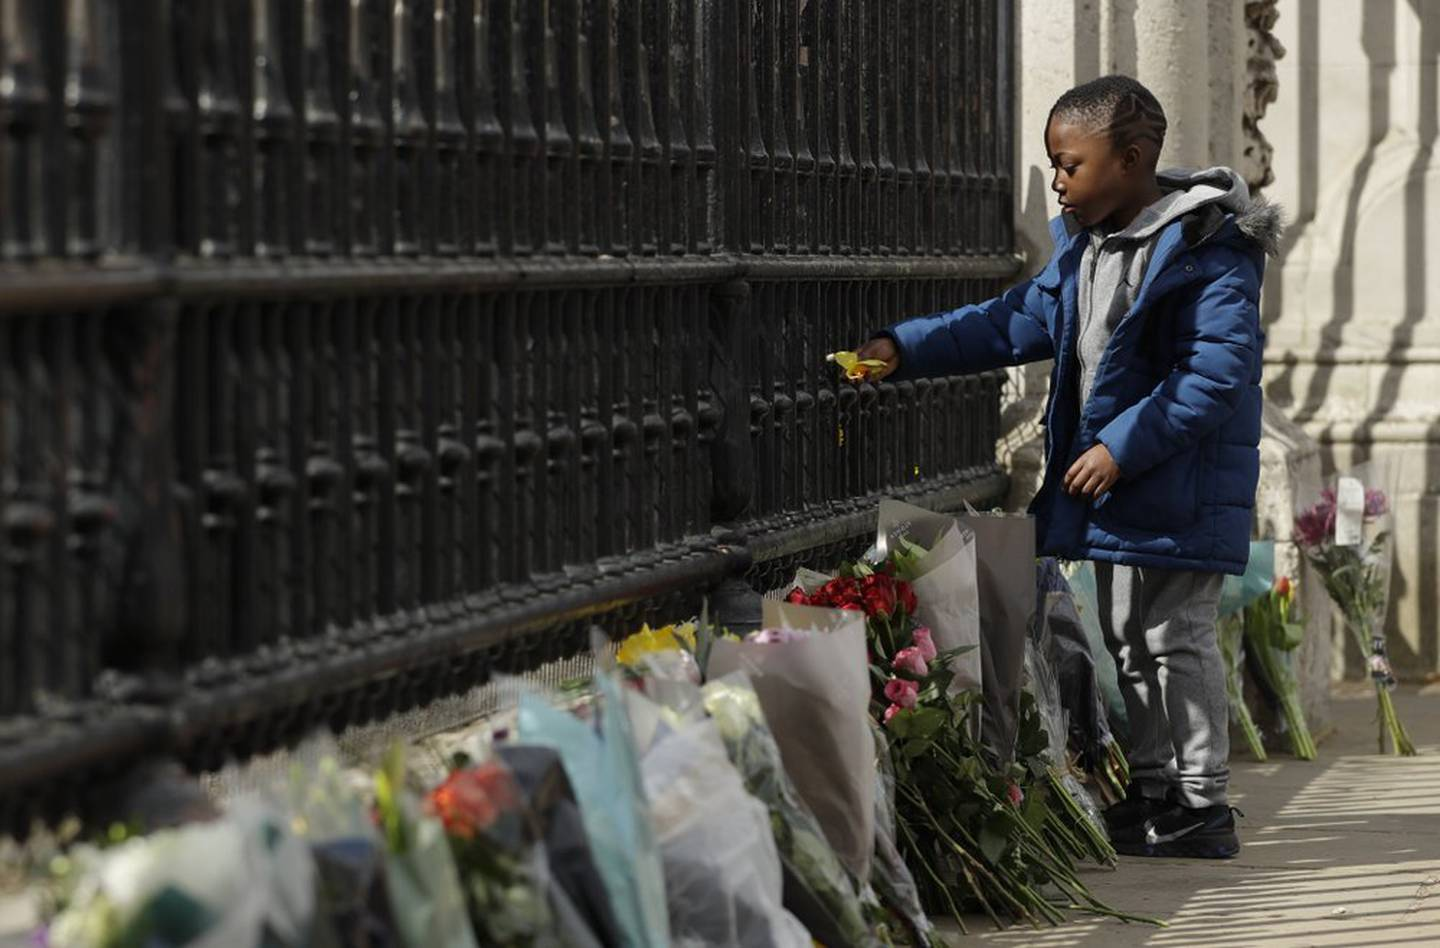 At Buckingham Palace a young boy places a flower on the Palace gate. Photo / AP